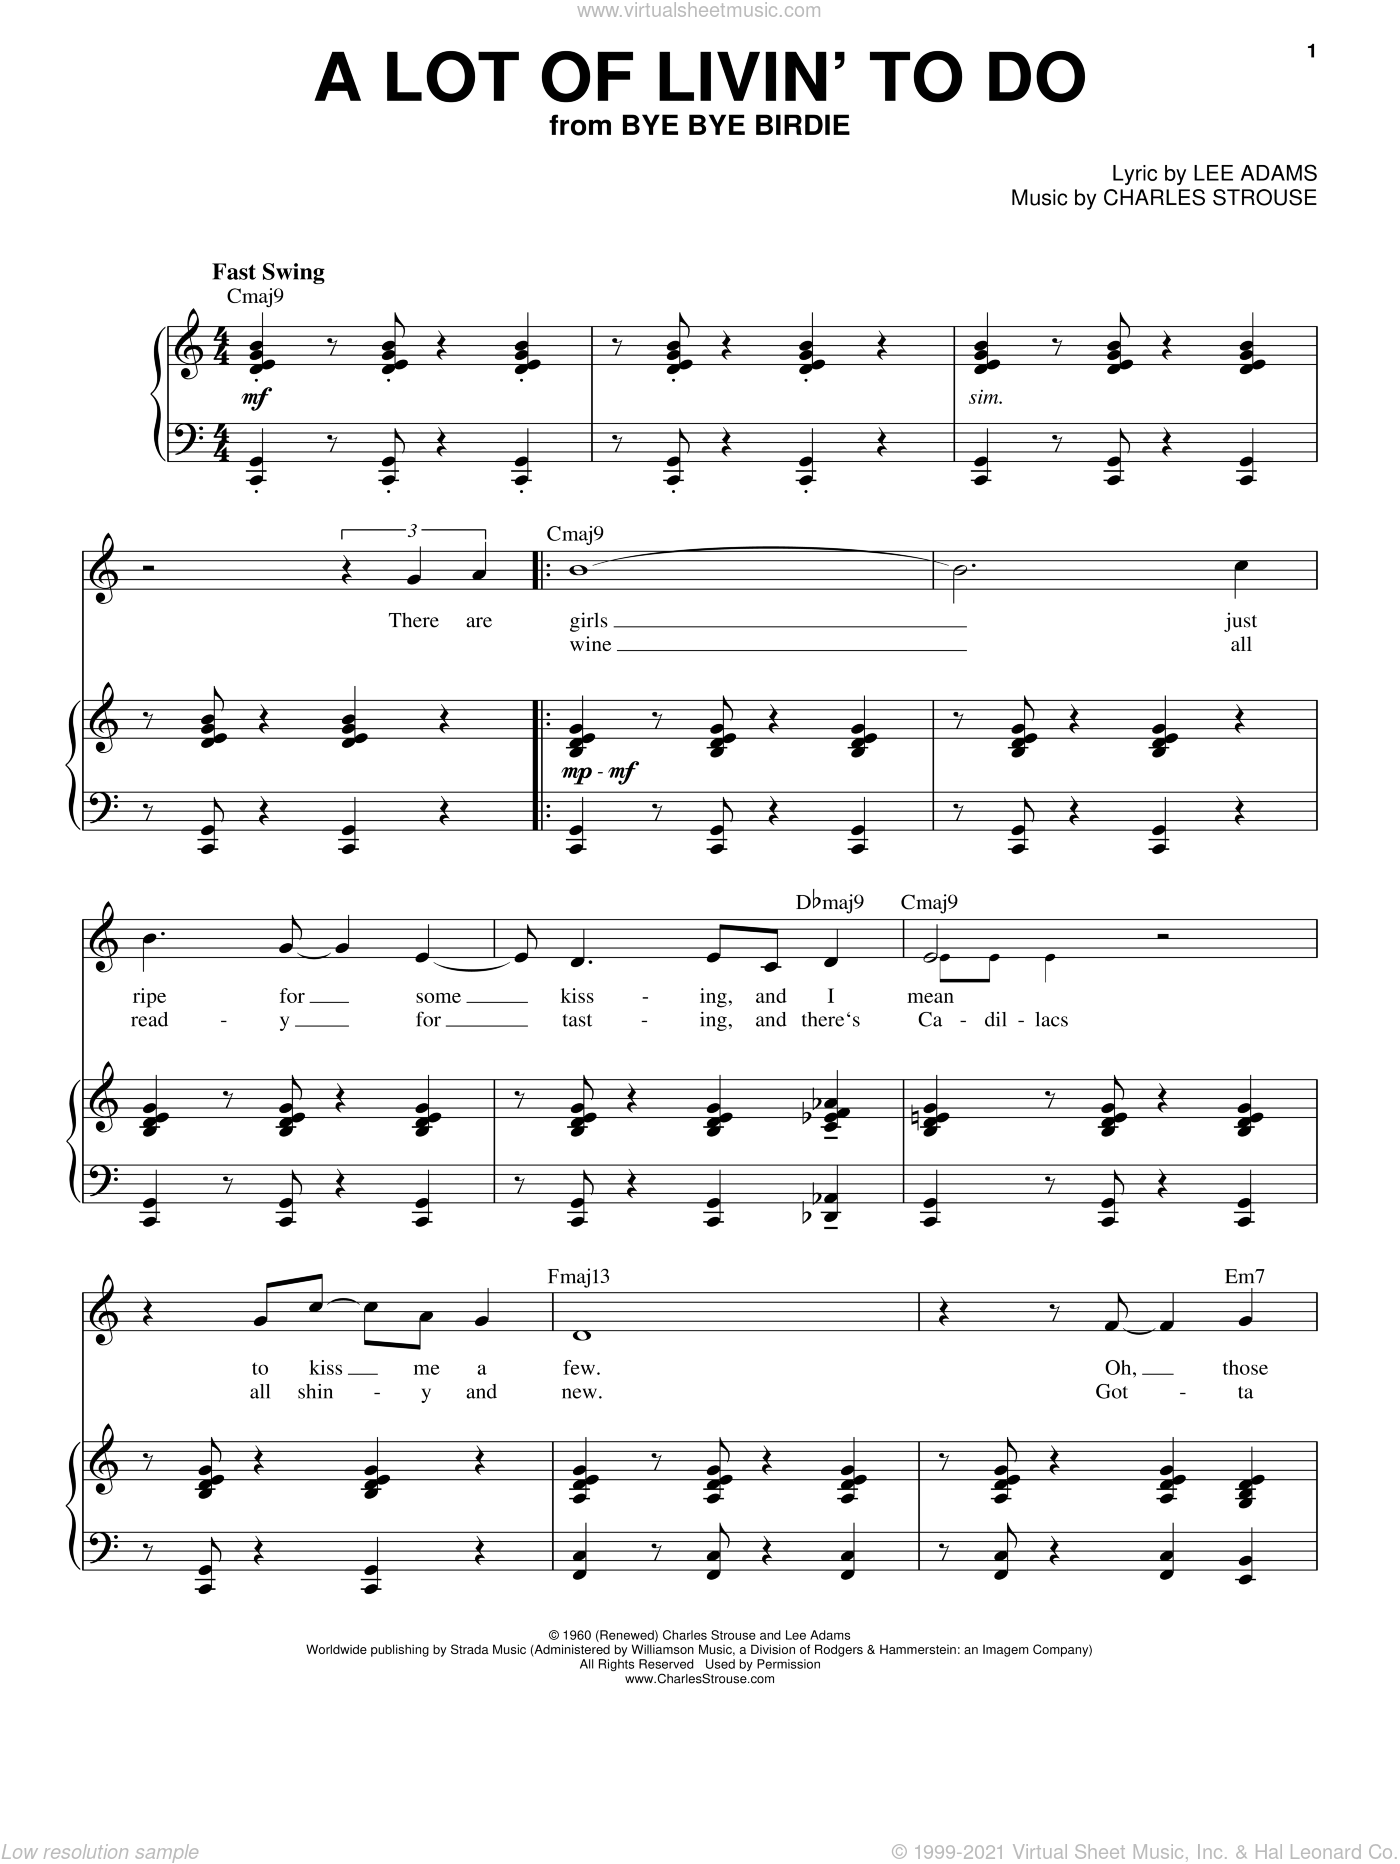 A Lot Of Livin' To Do sheet music for voice and piano by Lee Adams